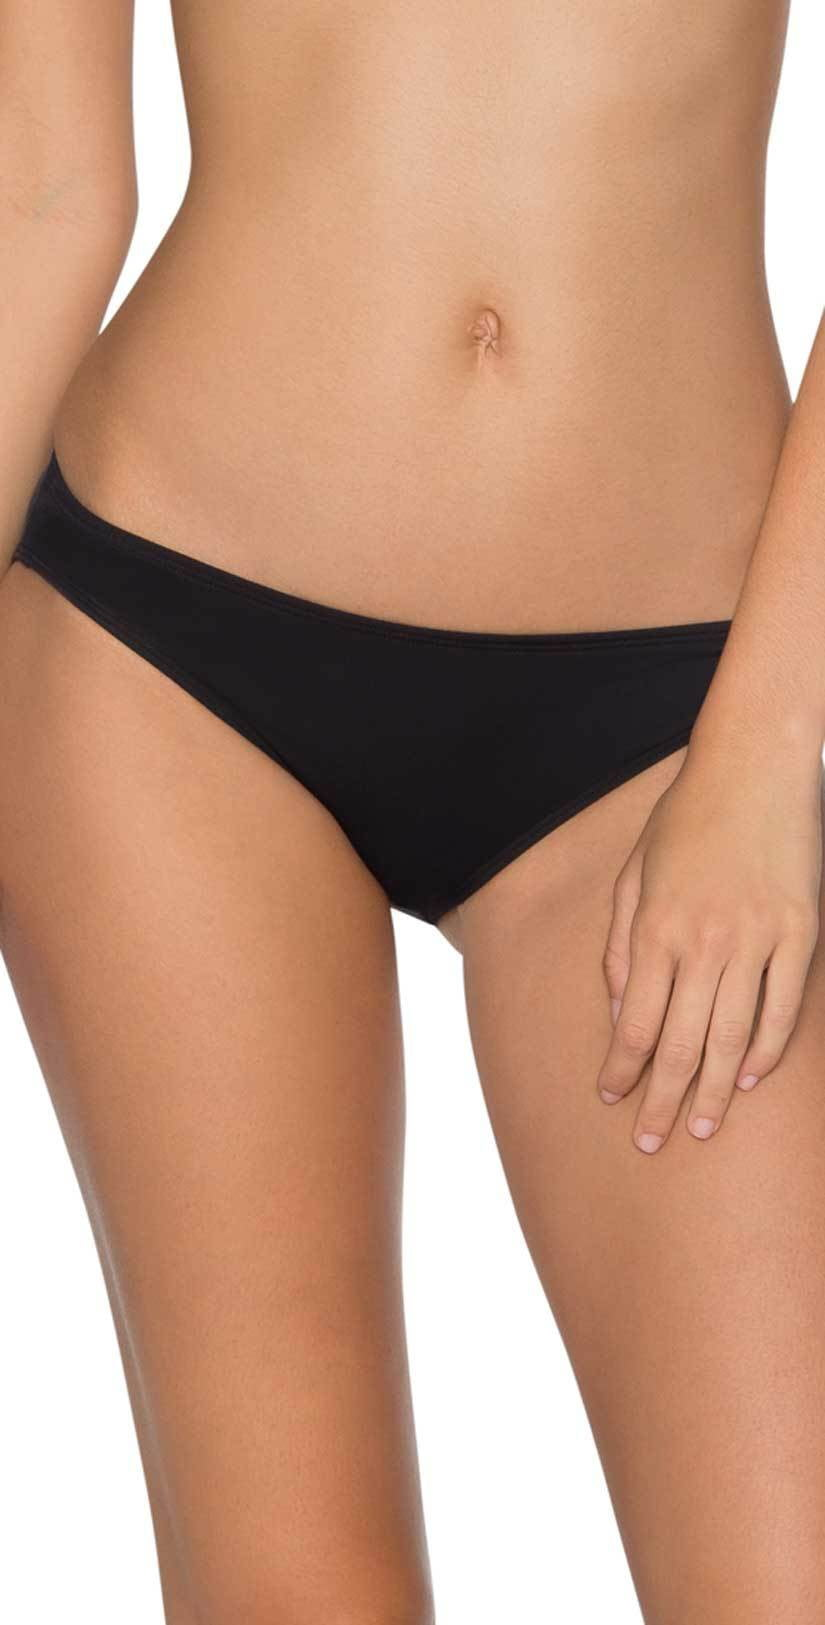 Sunsets Low Rider Bottom in Black 12B-BLCK: